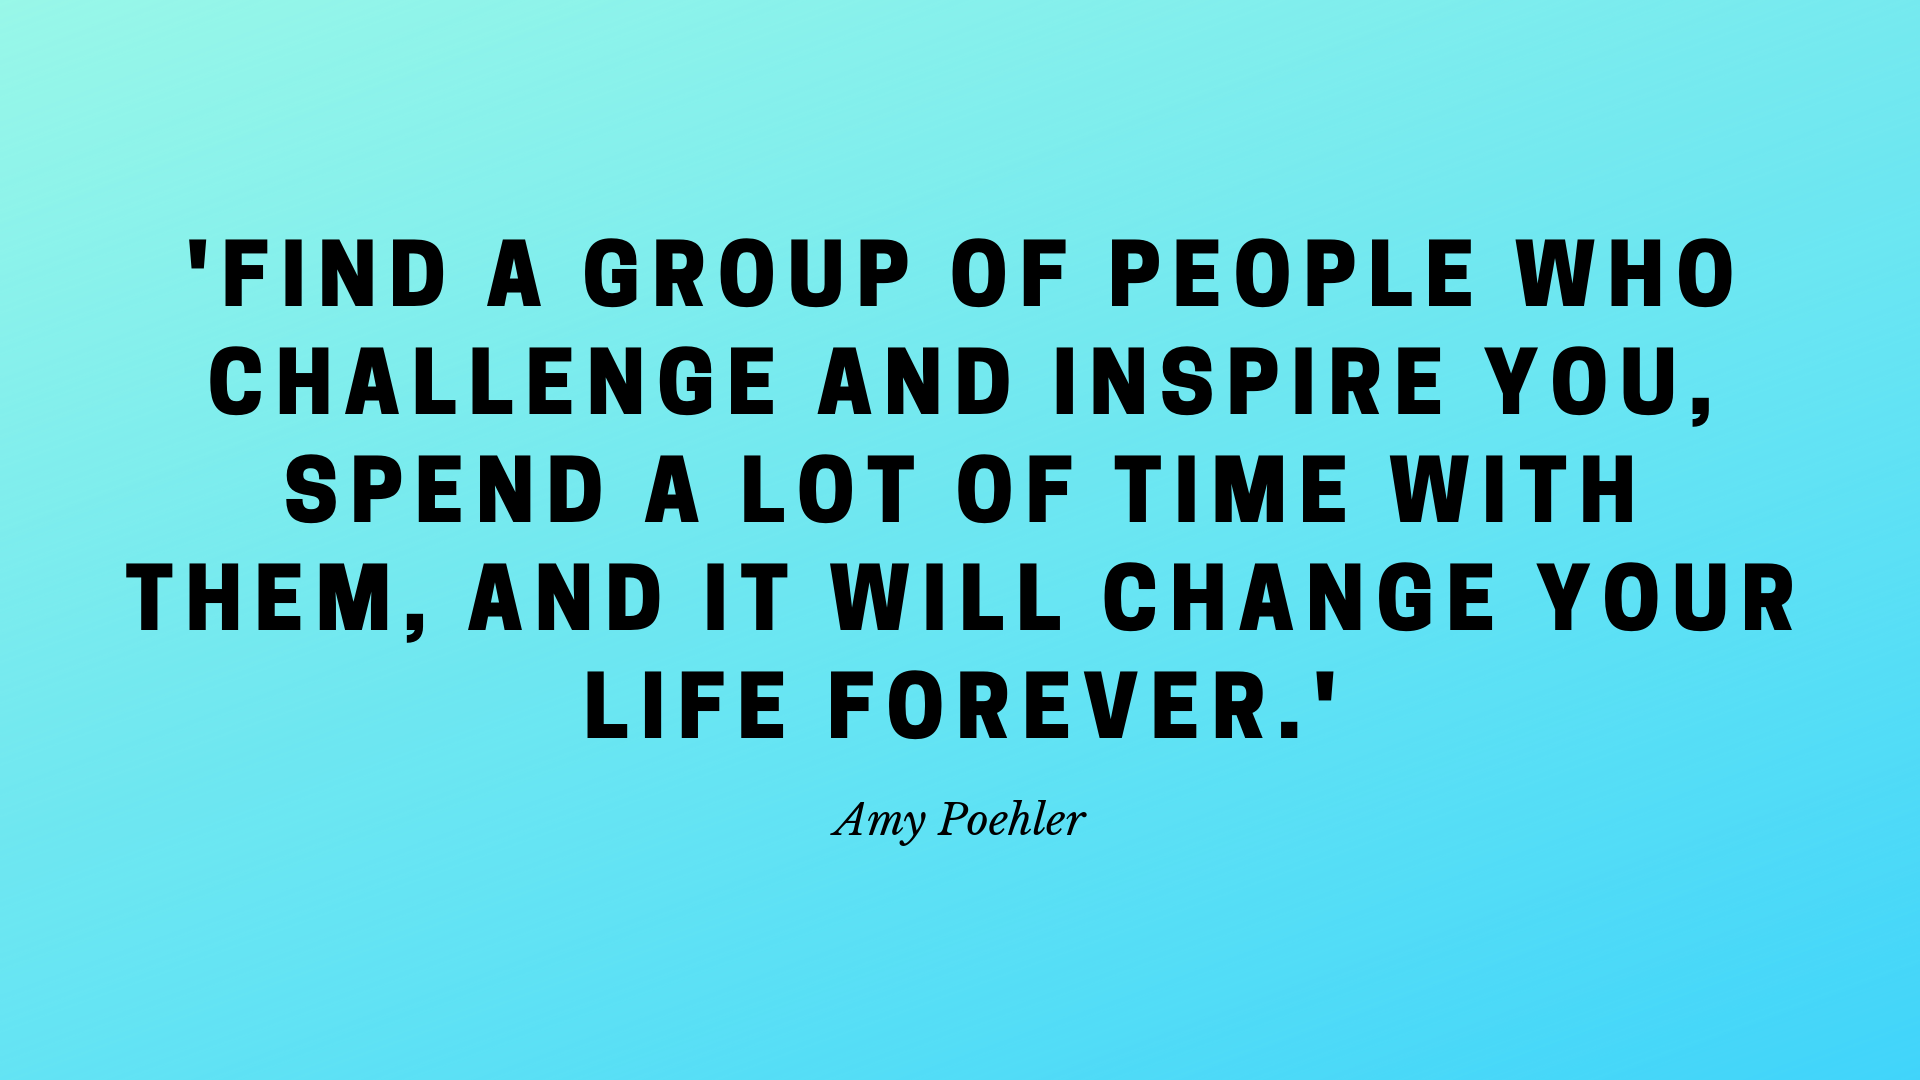 'Find a group of people who challenge and inspire you, spend a lot of time with them, and it will change your life forever.'.png